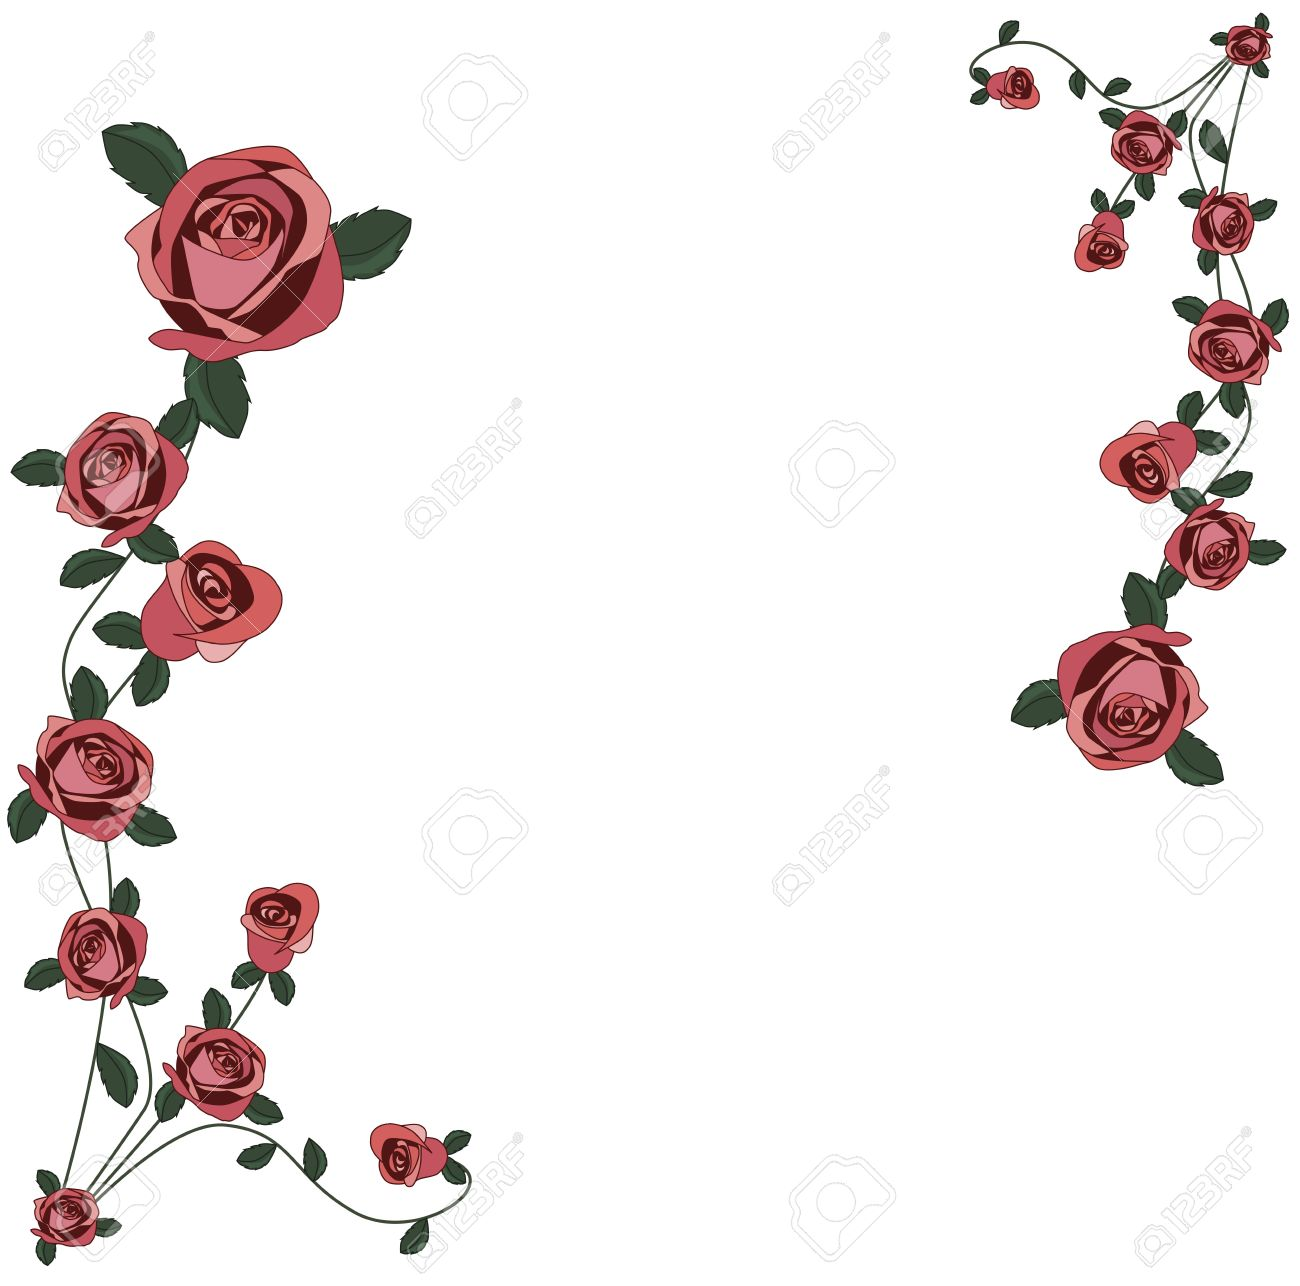 Roses Frame Royalty Free Cliparts, Vectors, And Stock Illustration ...